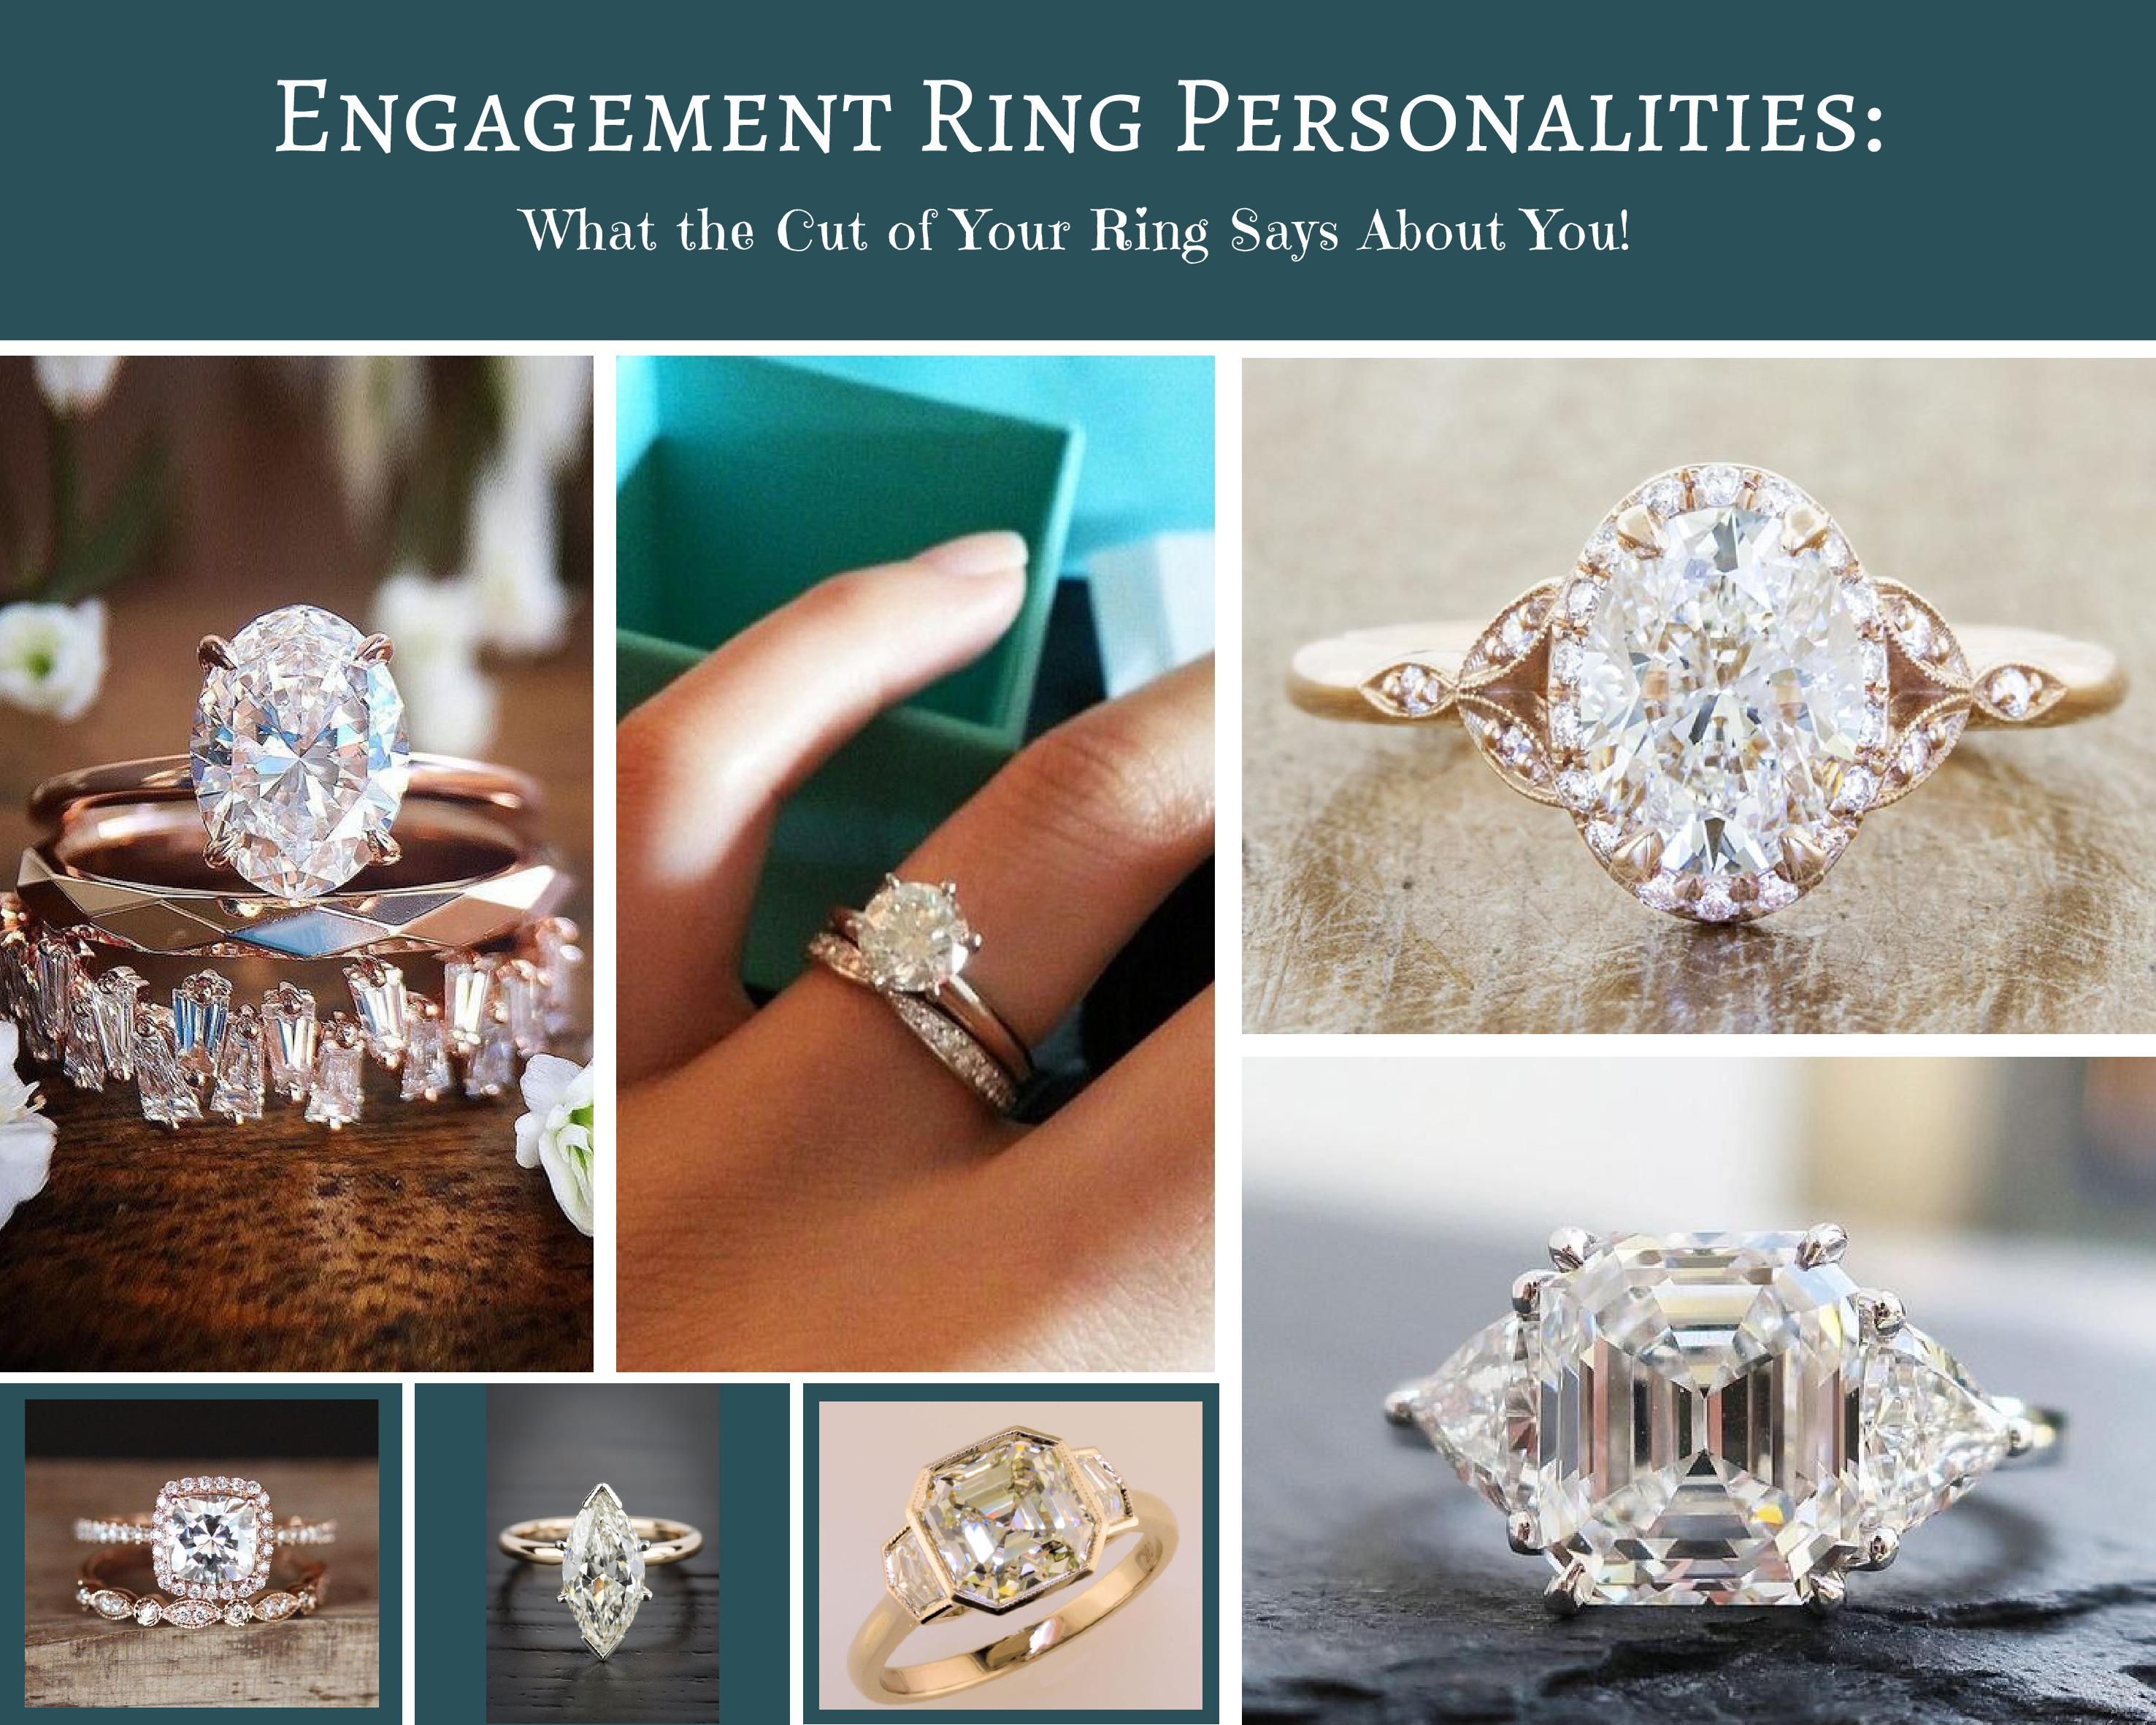 Your Engagement Ring Personality